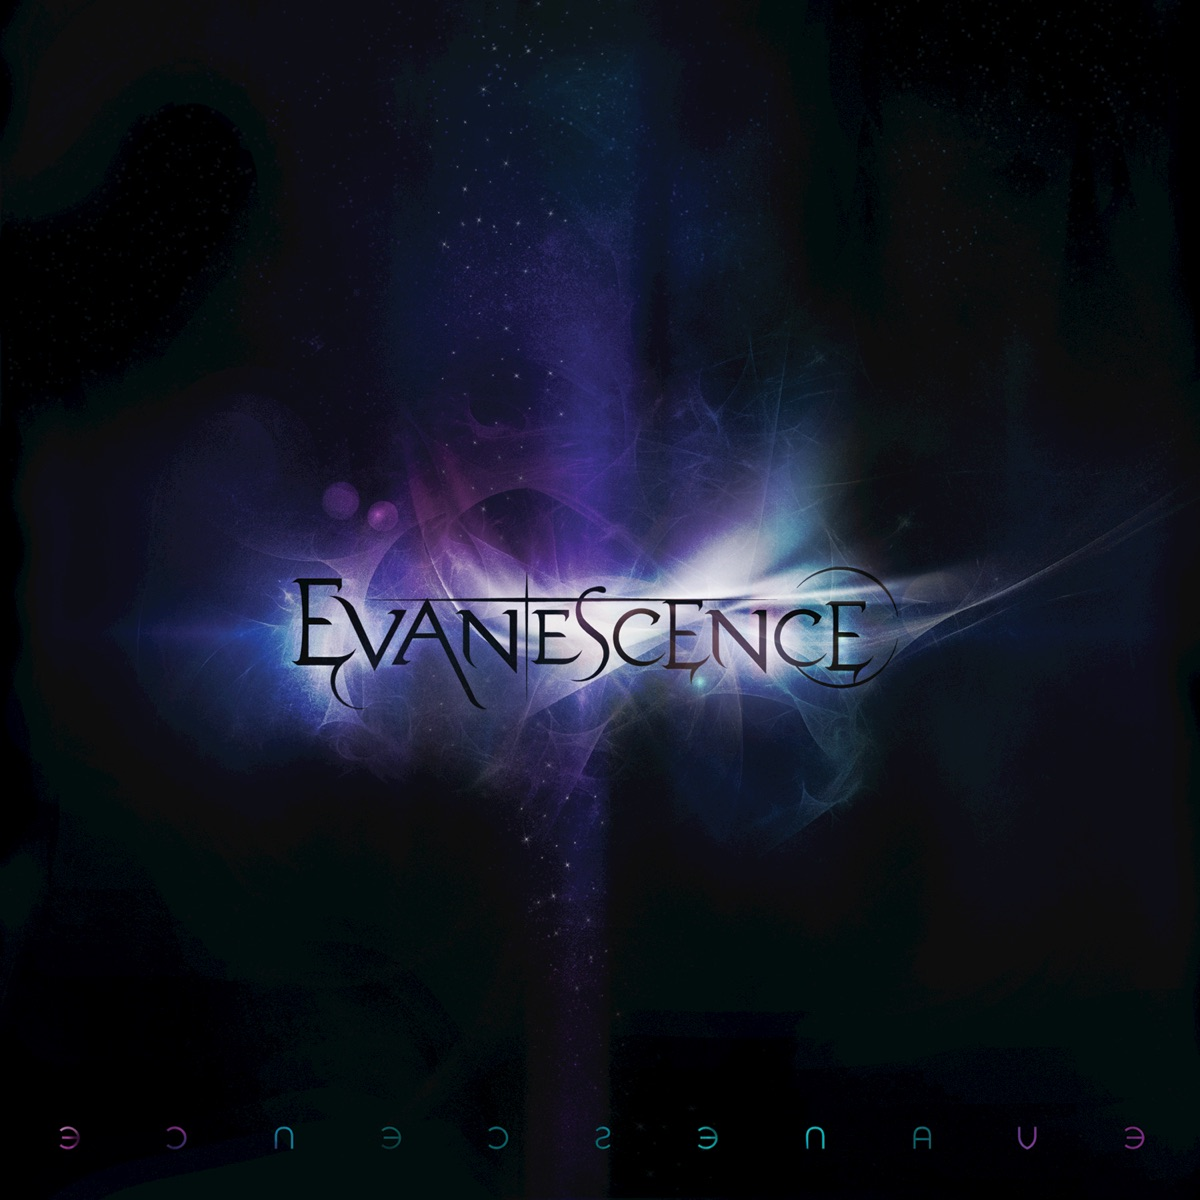 Evanescence Evanescence CD cover